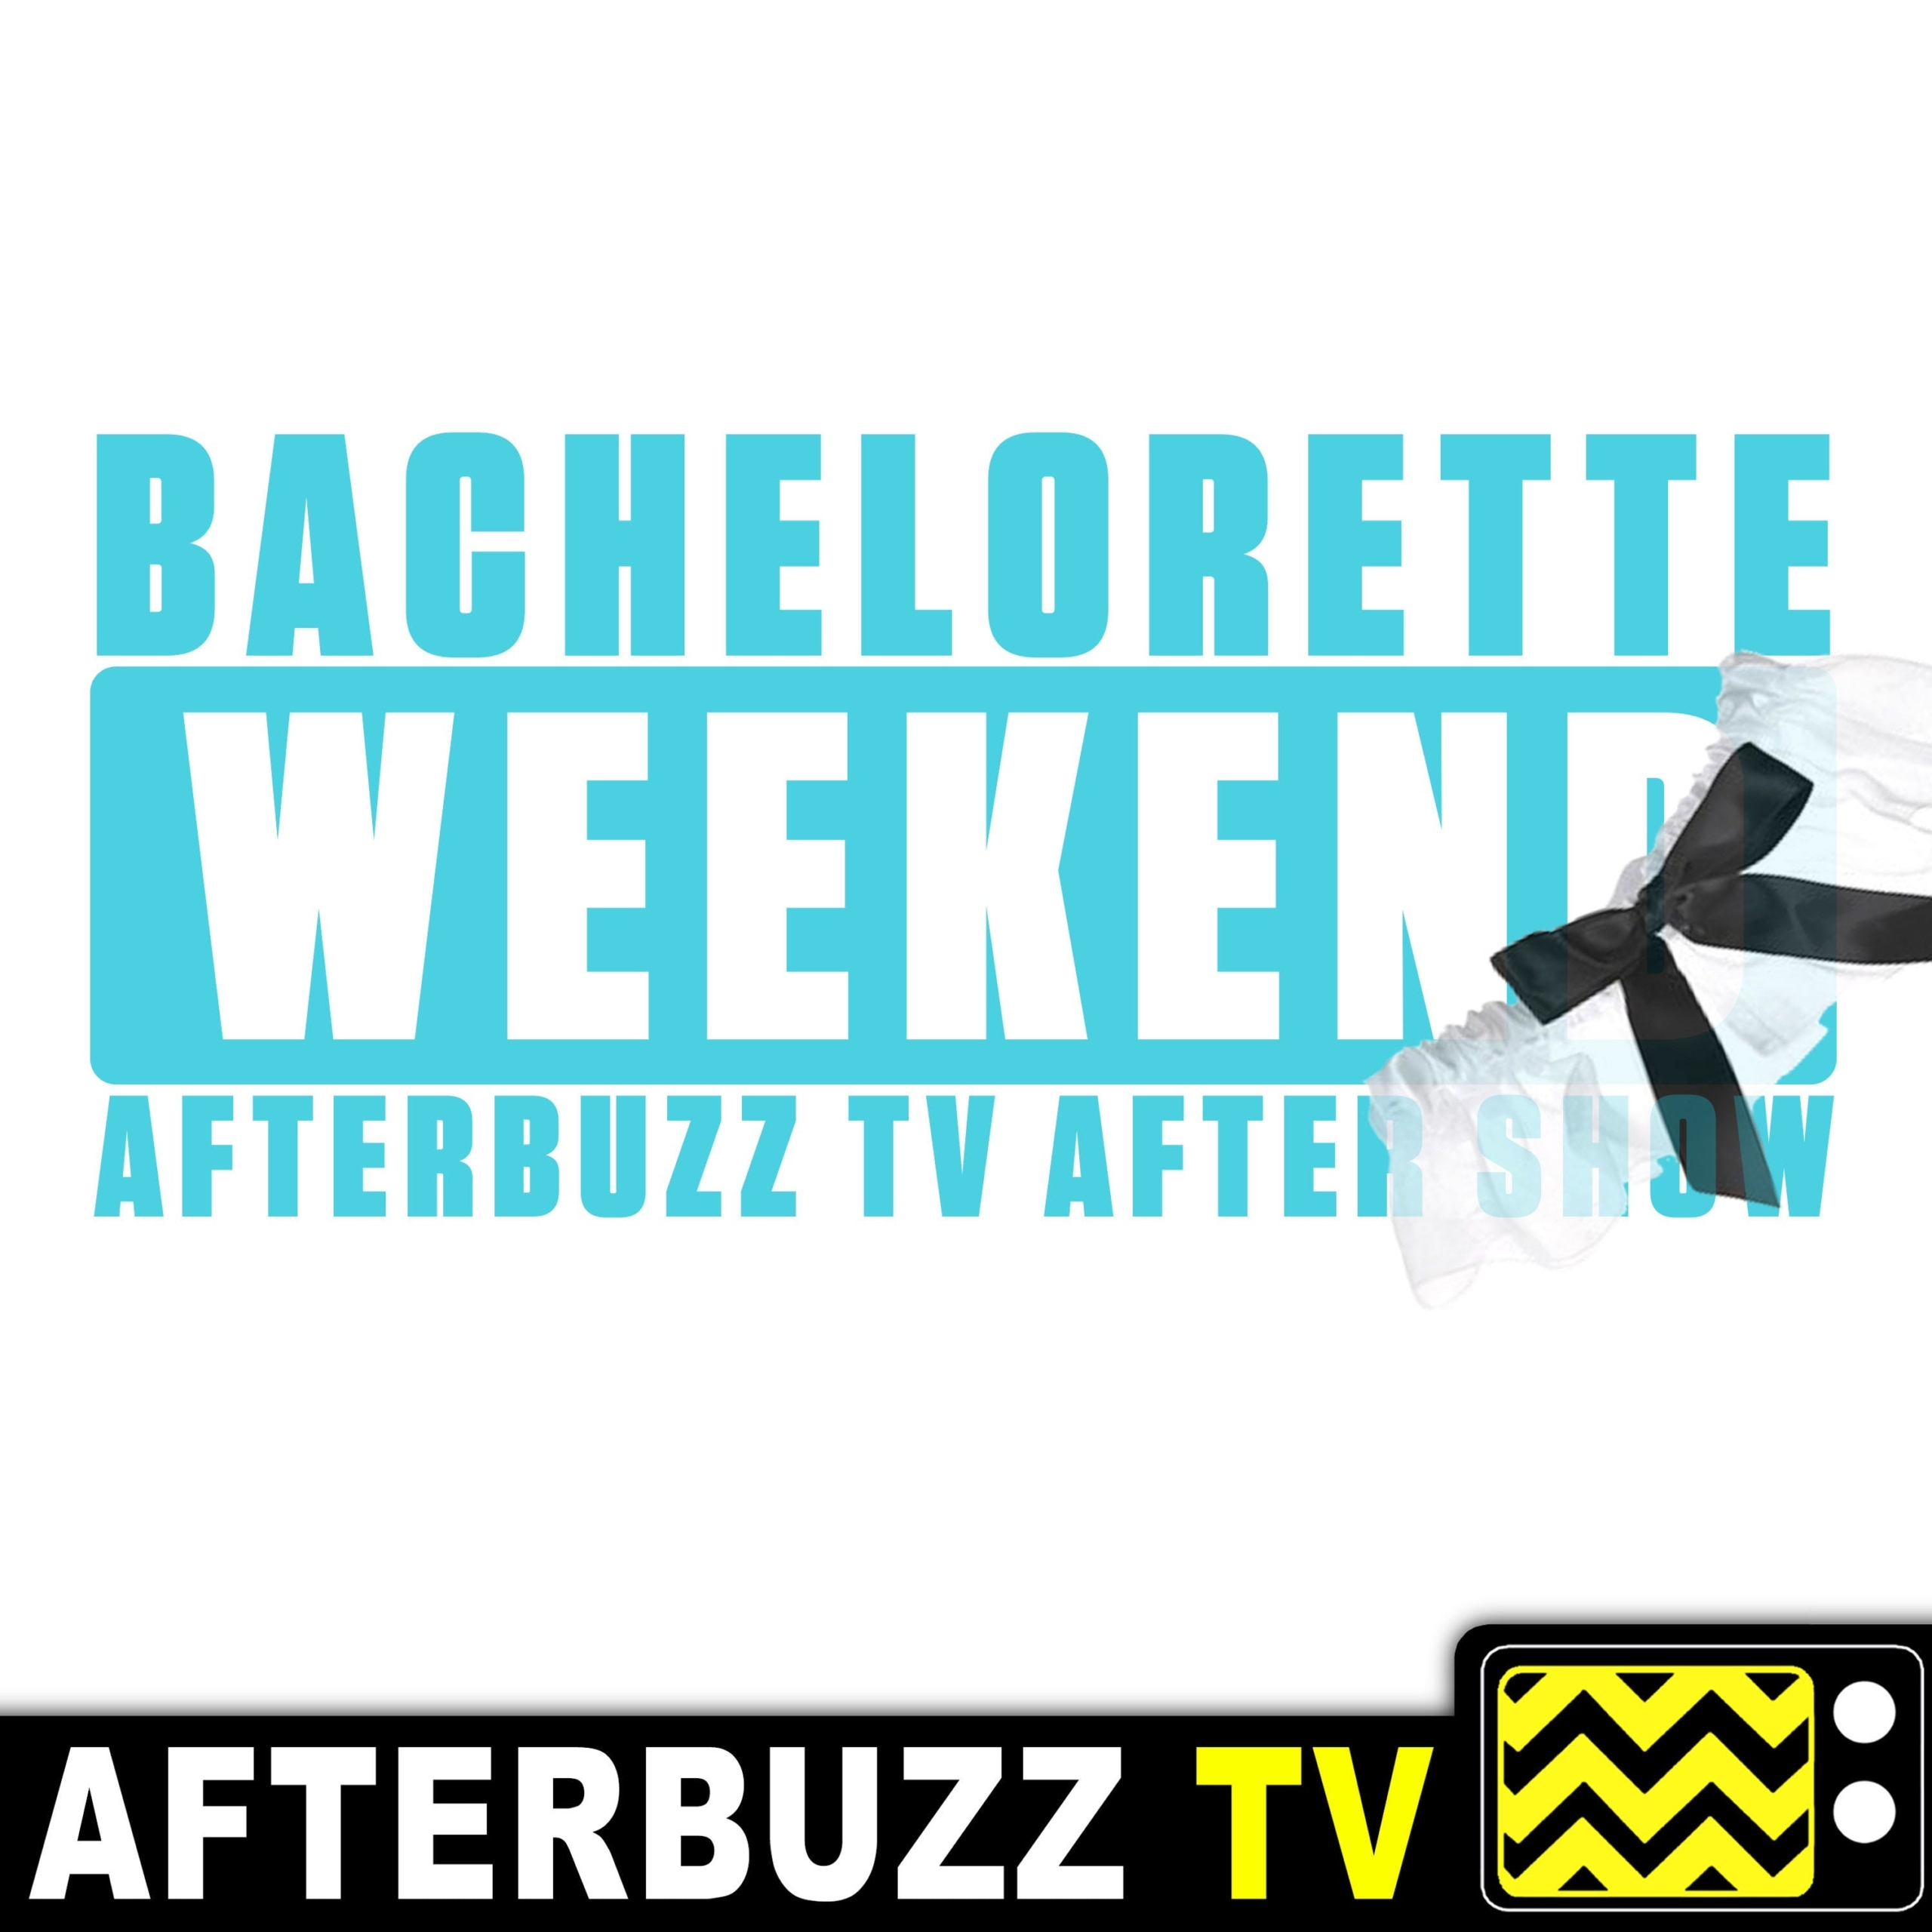 Bachelorette Weekend S:1 | Happy Birthday Batches! E:7 | AfterBuzz TV AfterShow